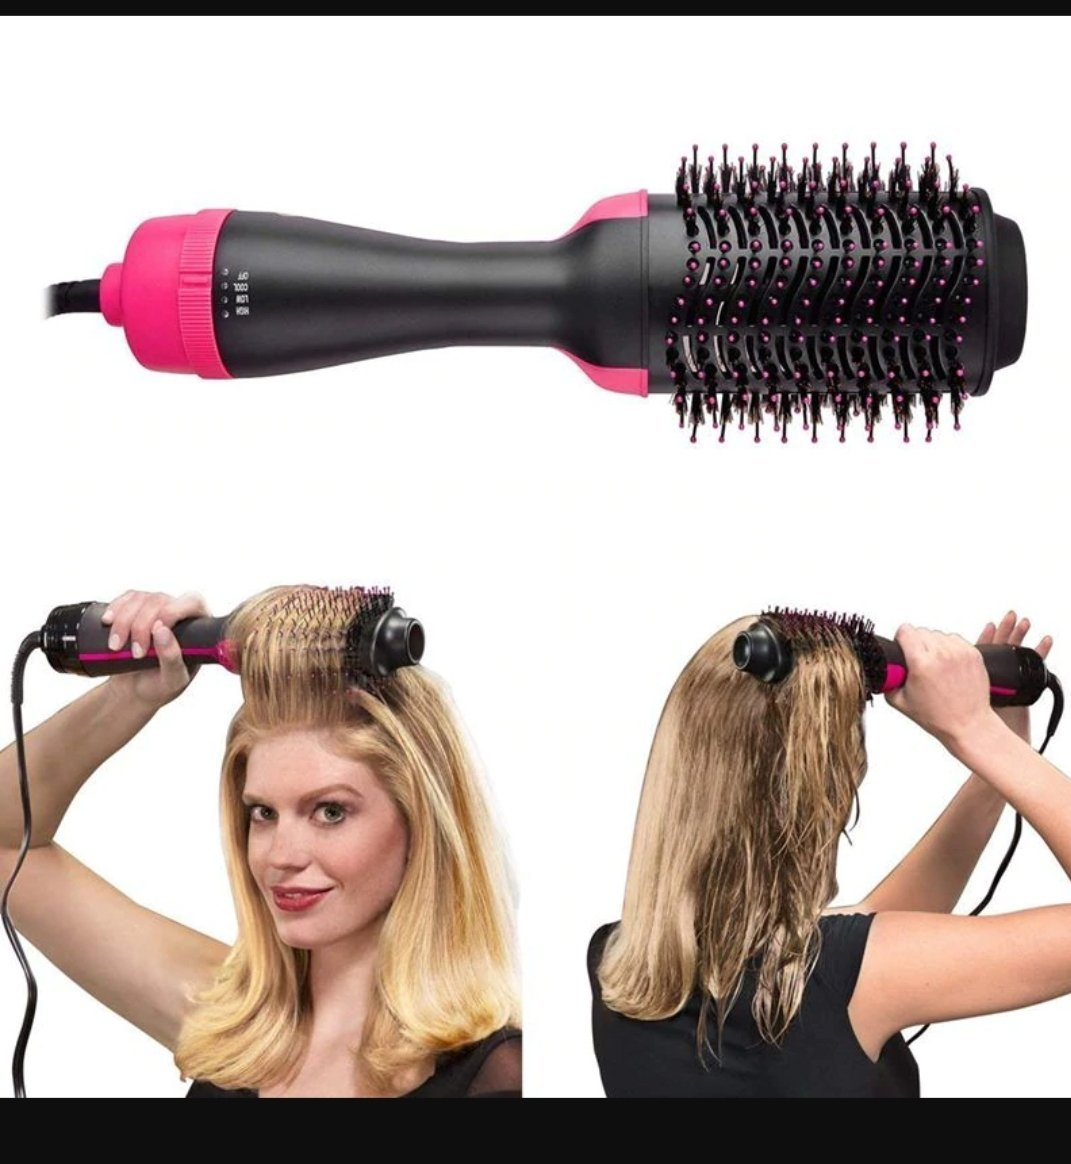 2 in 1 Multifunctional Hair Dryer Volumizer